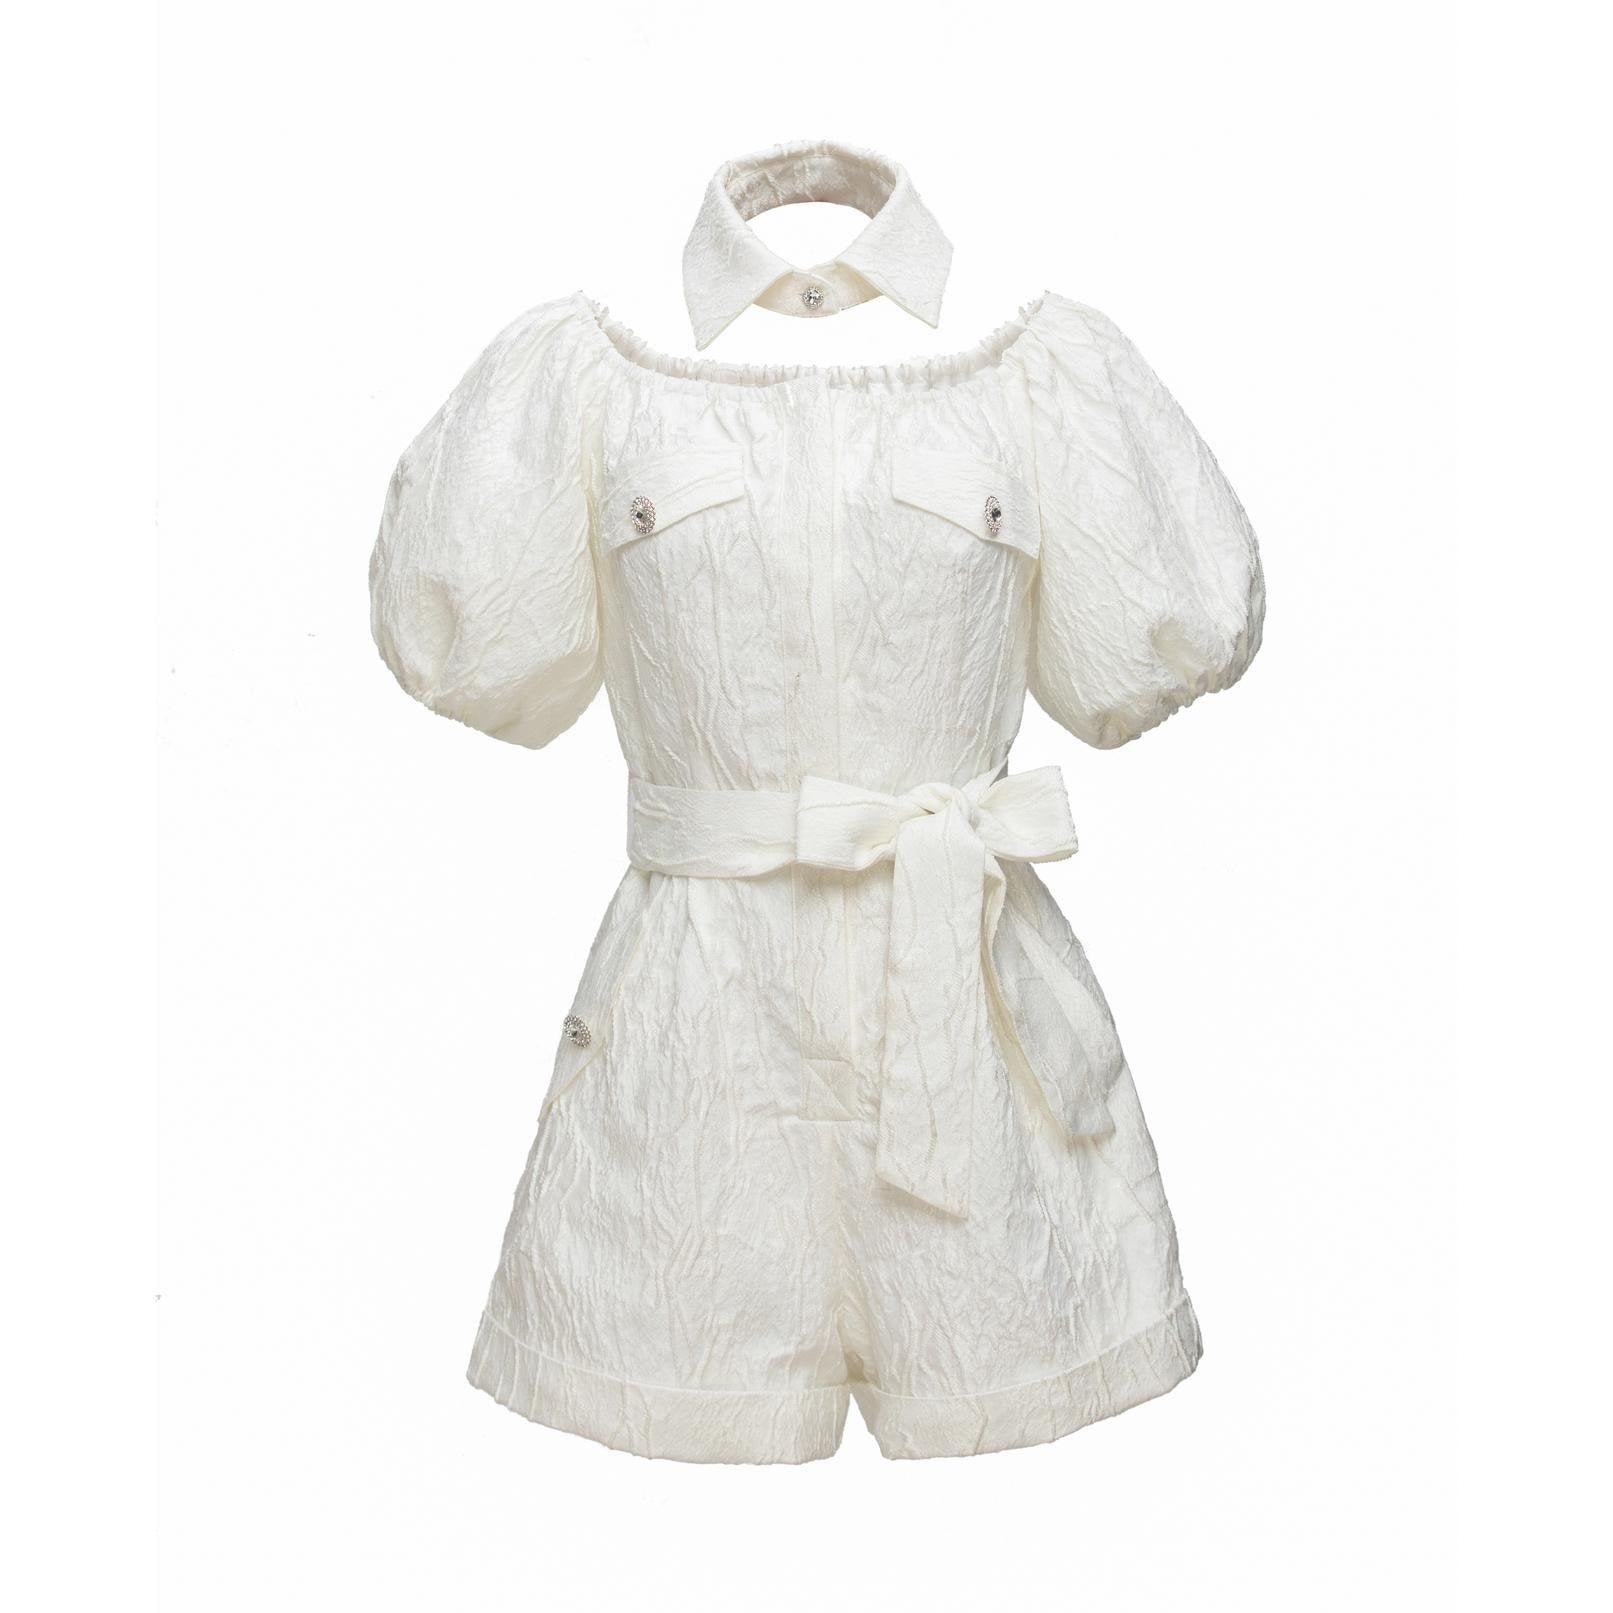 WARM AID White Jacquard Bodysuits | MADA IN CHINA